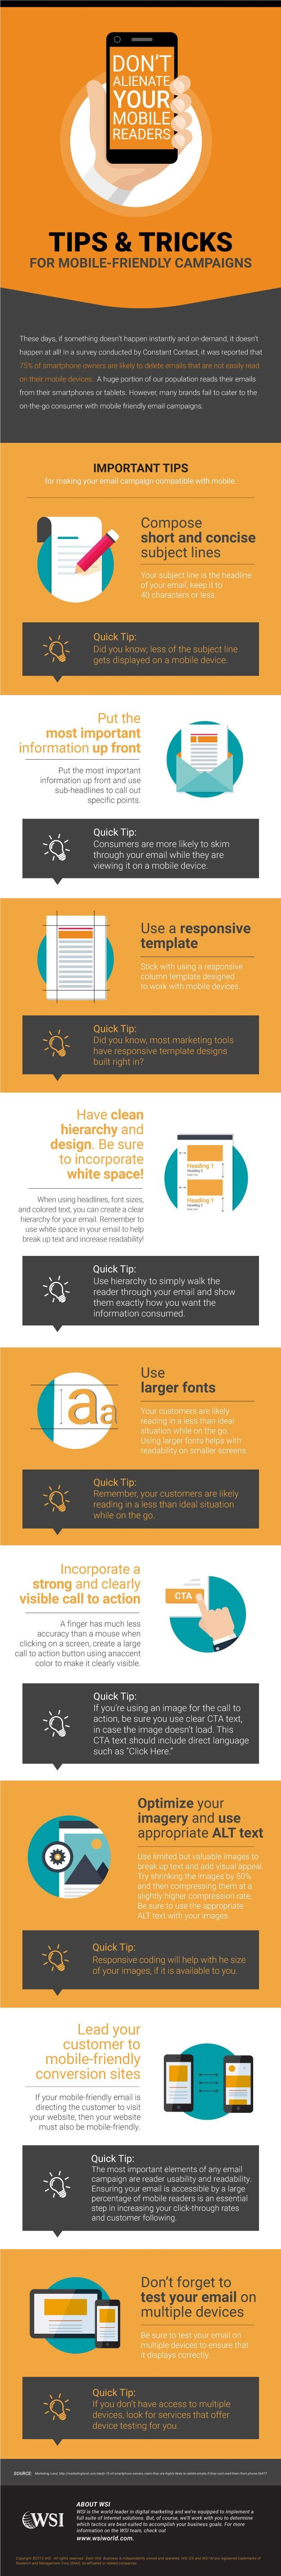 Don't Alienate Your Mobile Readers [Infographic] | Social Media Today